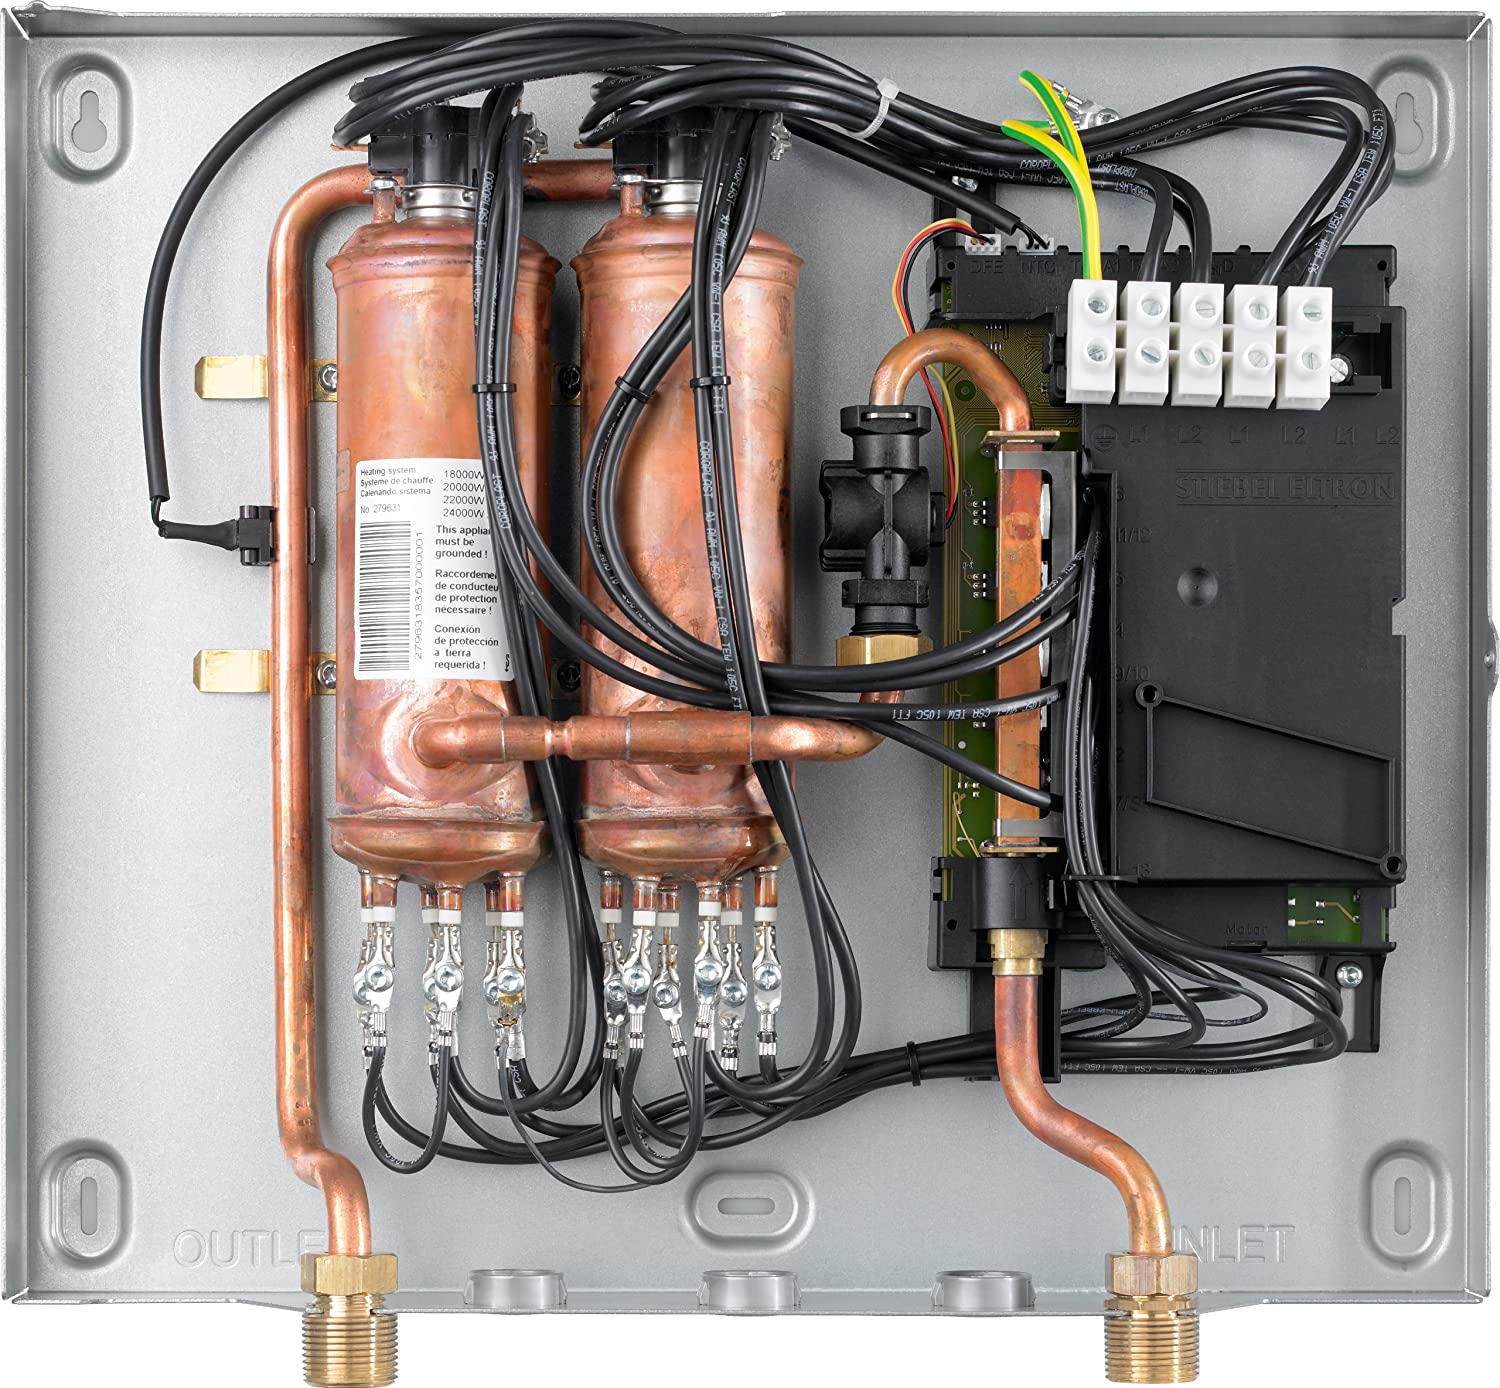 A1jOsvnSVTL._SL1500_ stiebel eltron tempra 20 kw, tankless electric water heater with rheem rte 18 wiring diagram at reclaimingppi.co